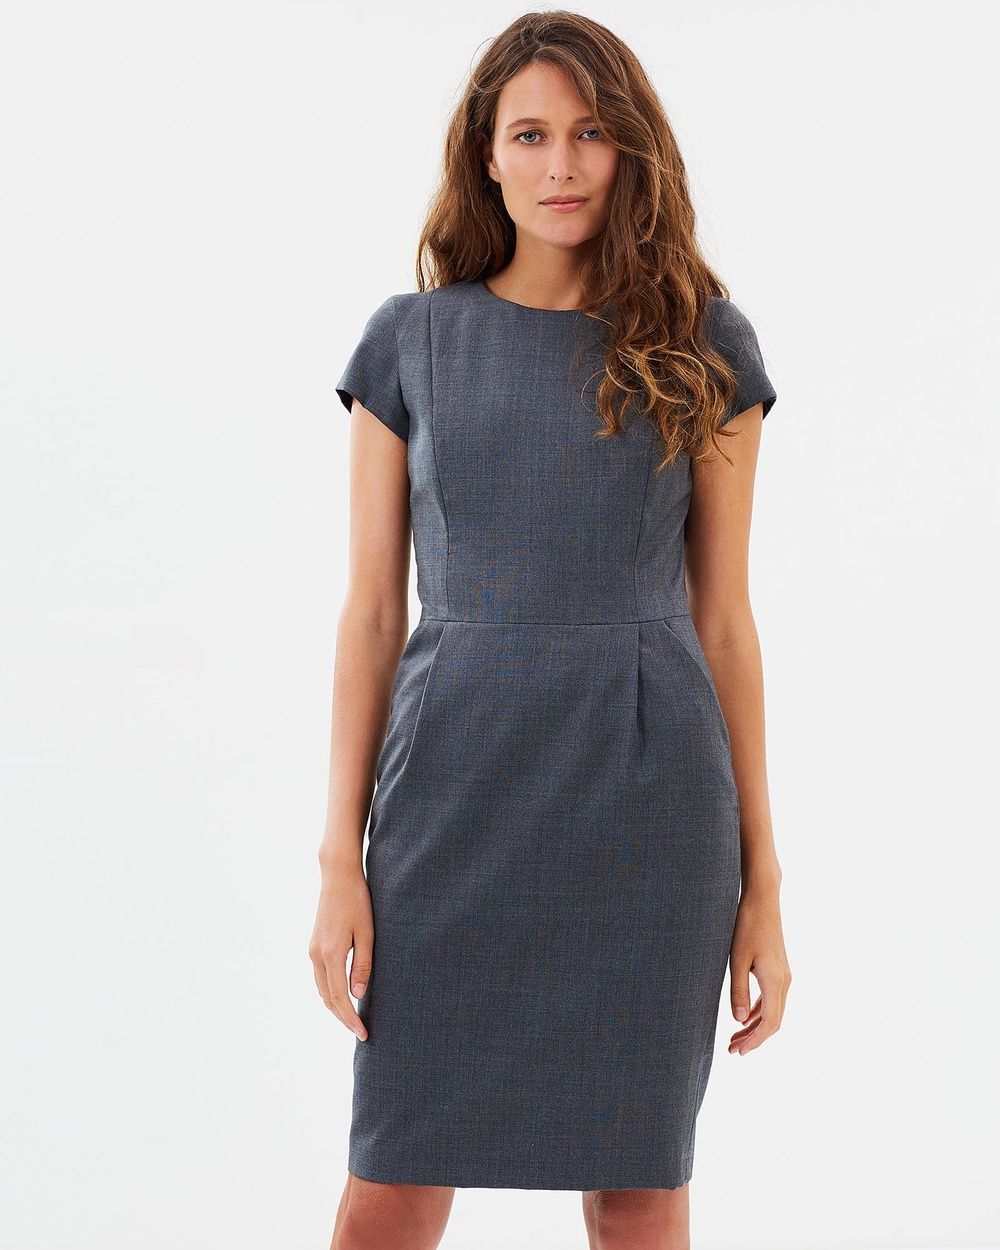 Farage Lane Dress Dresses Grey Lane Dress